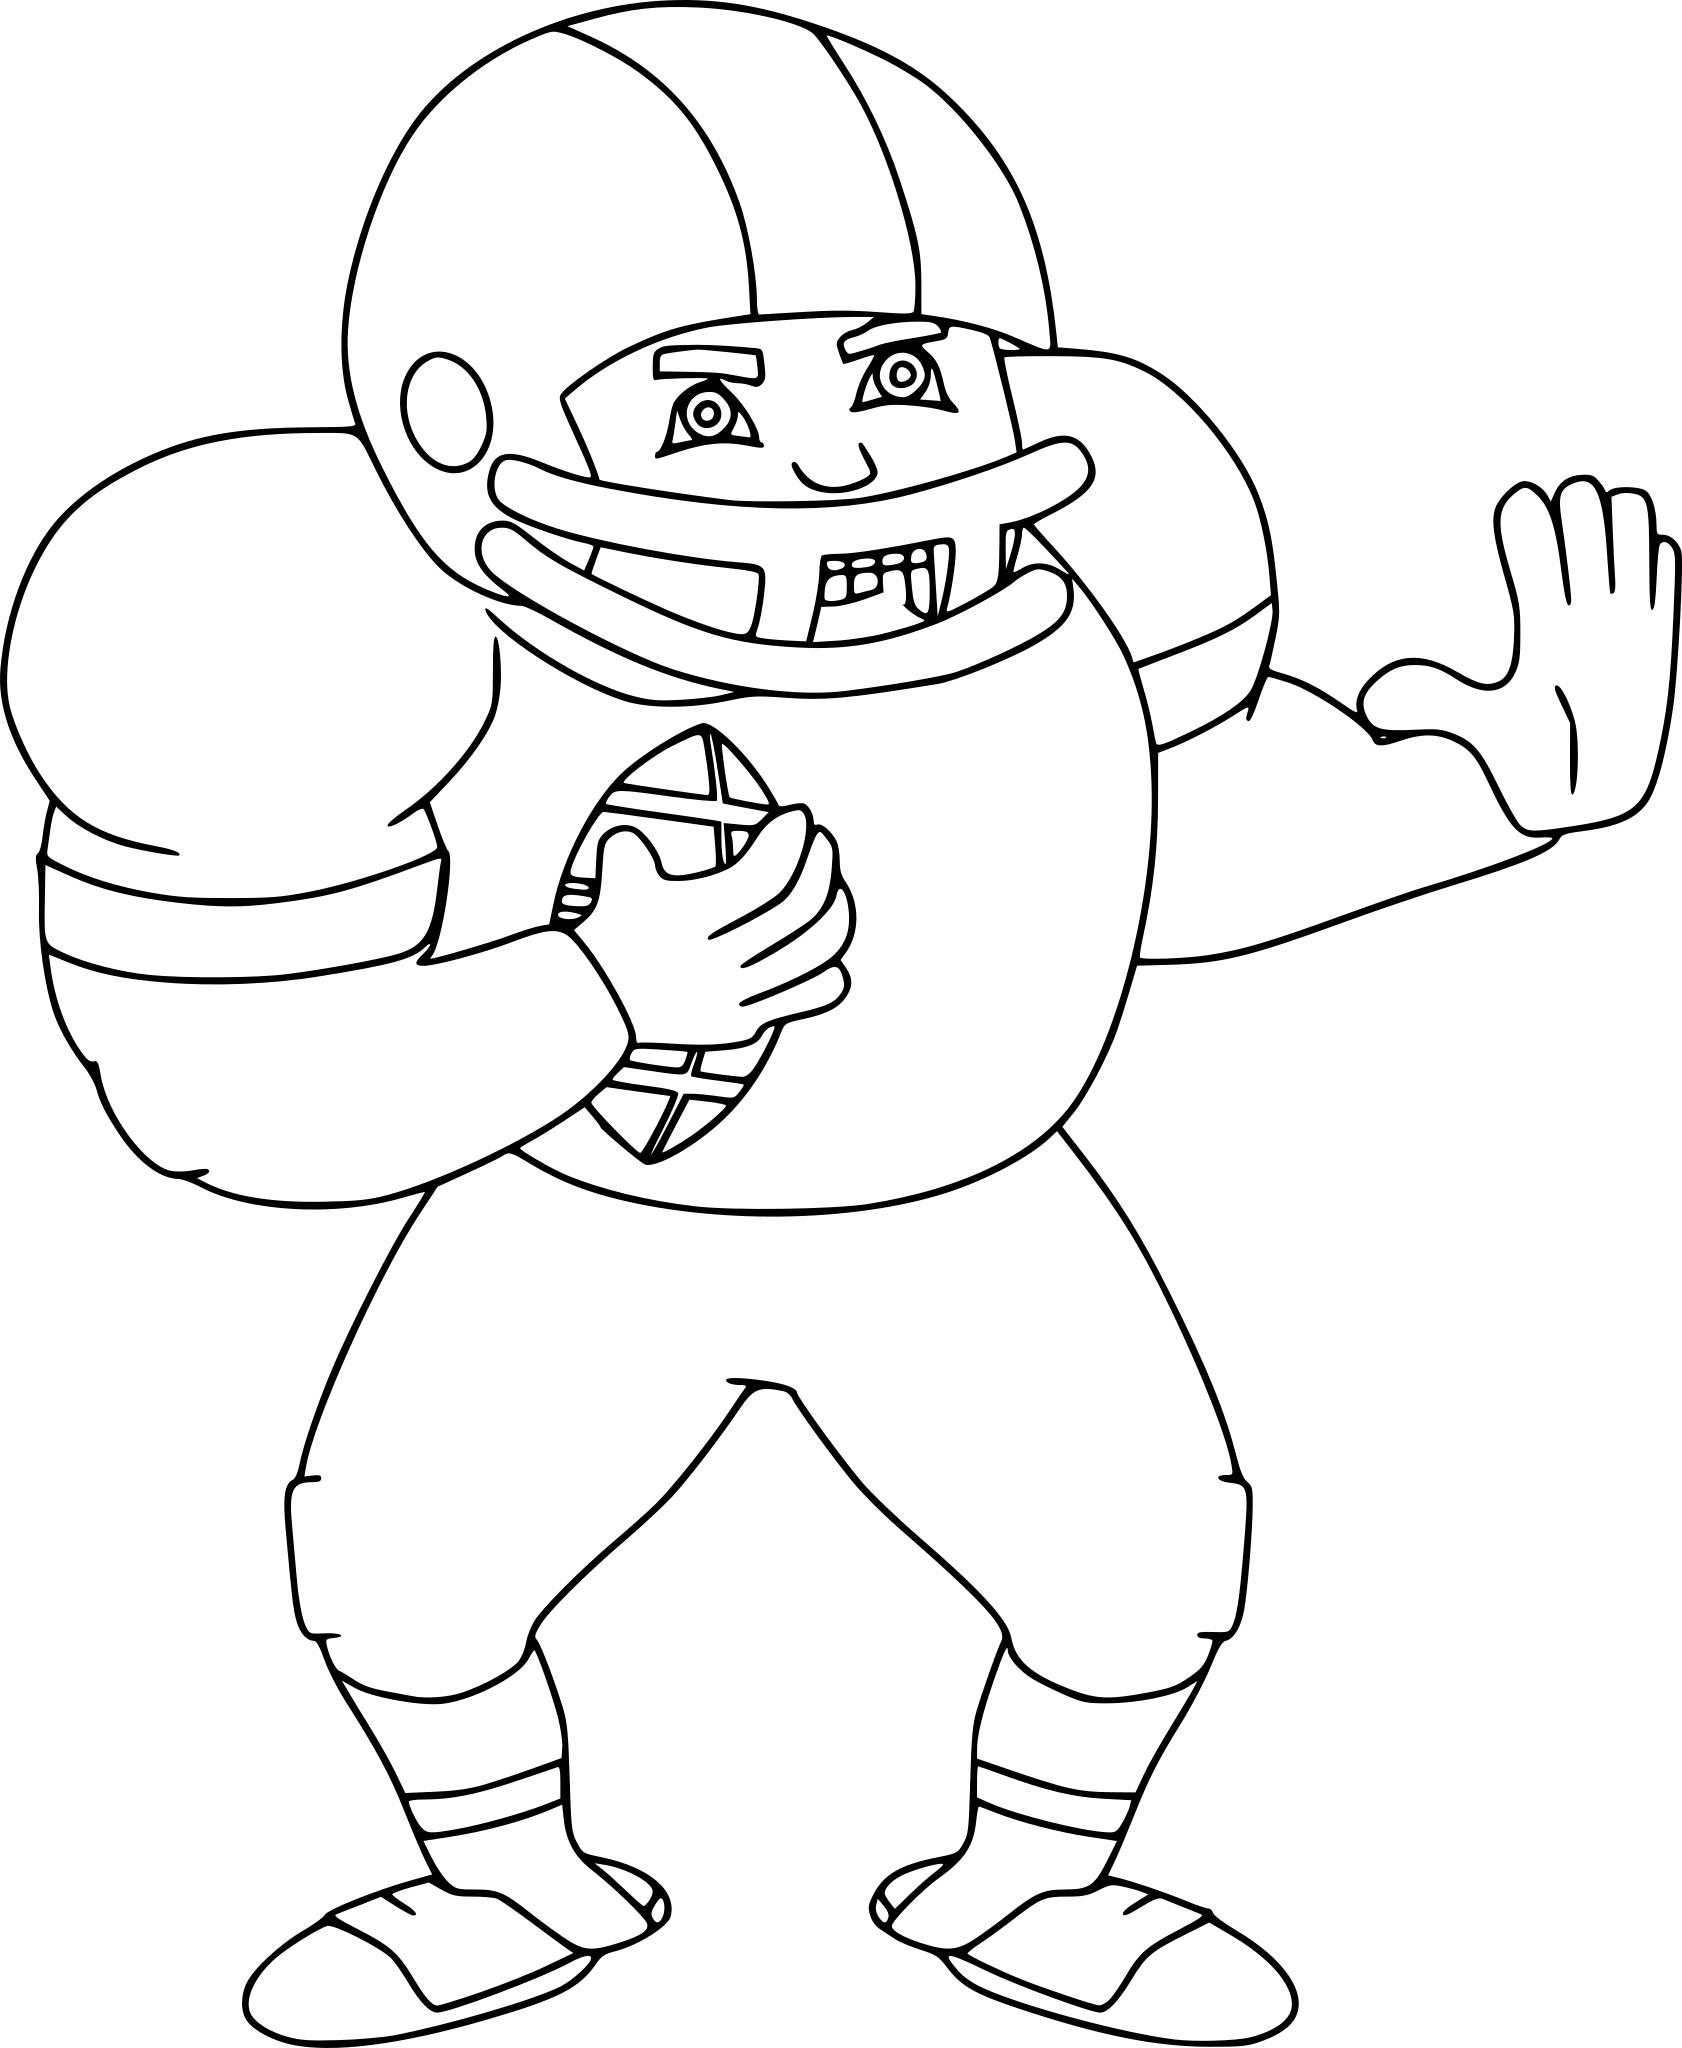 Coloriage football americain